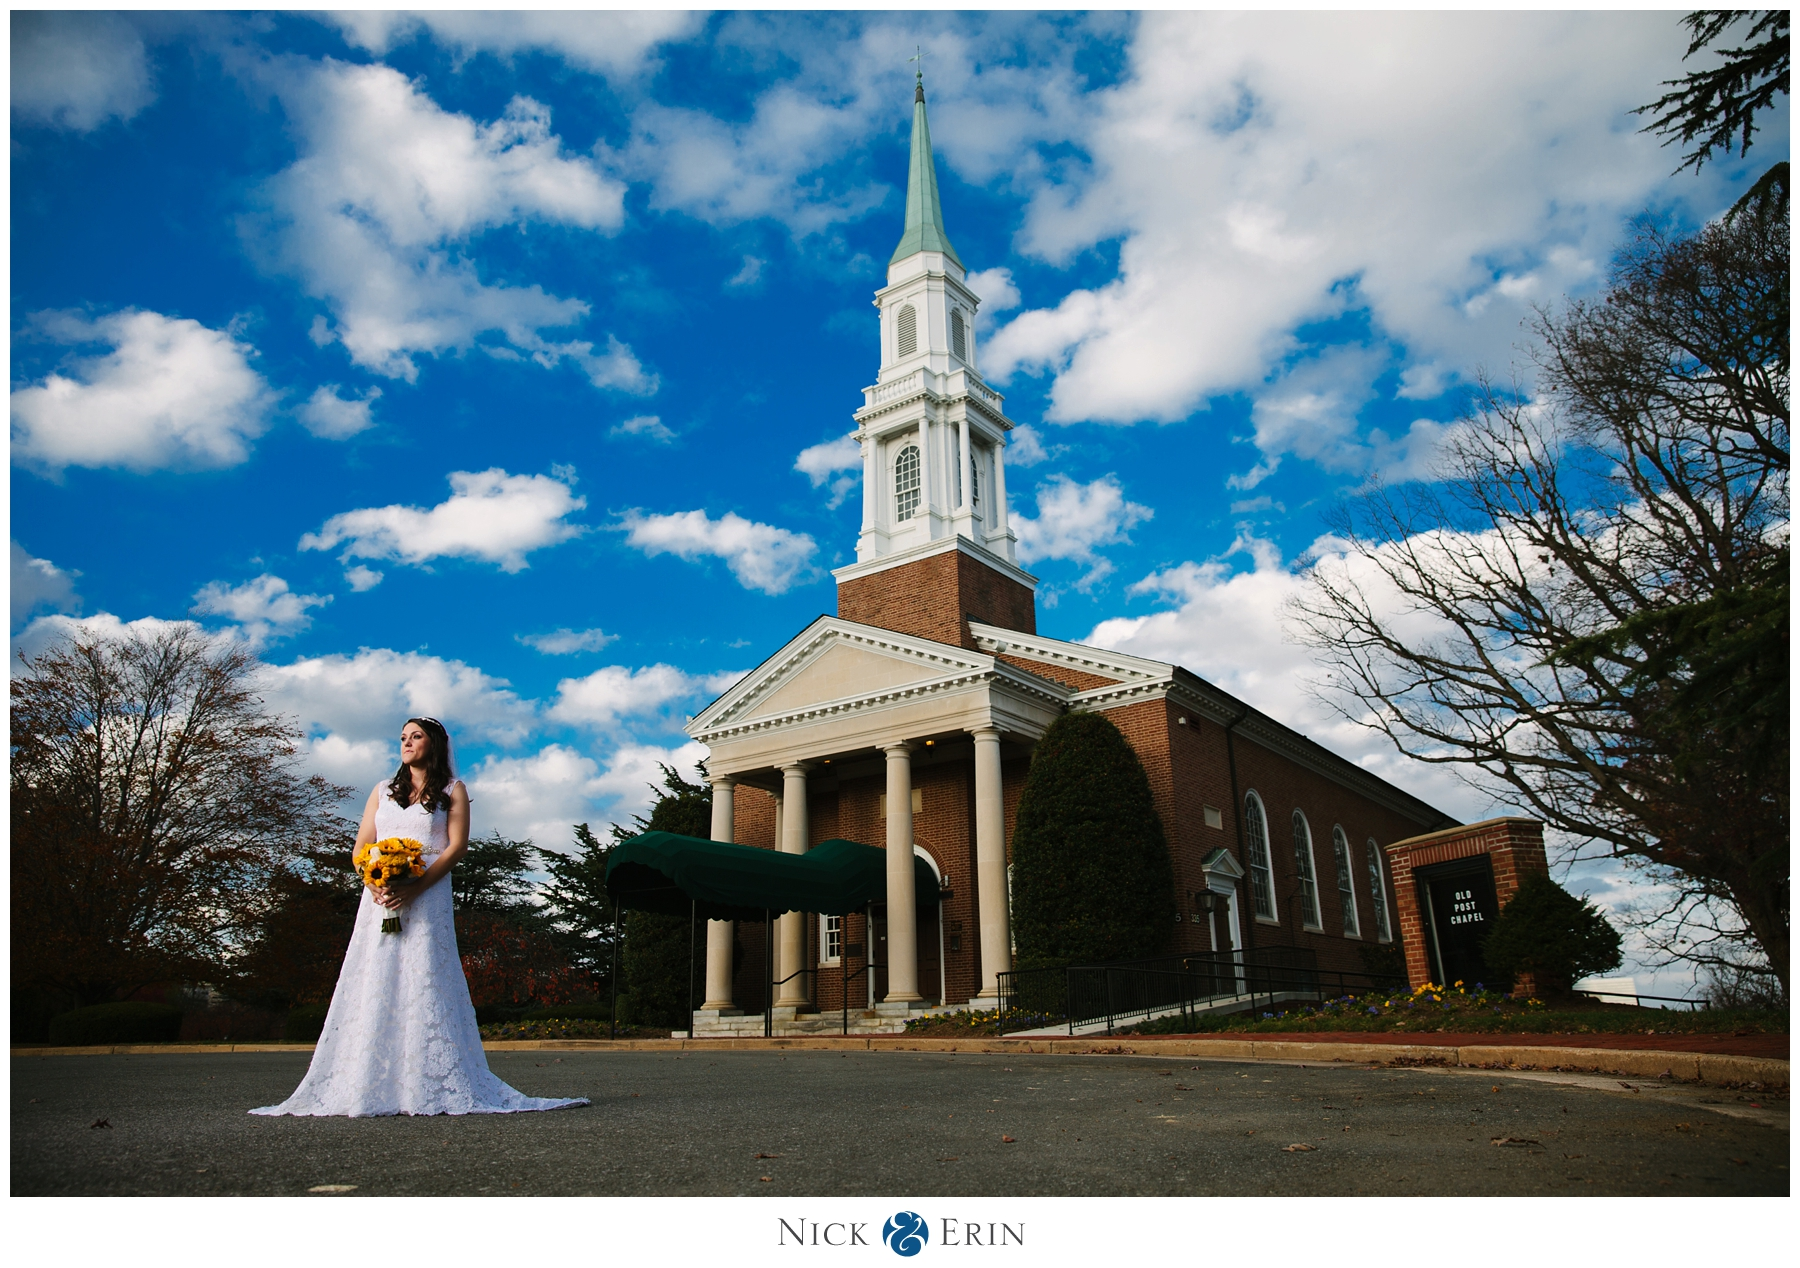 Donner_Photography_Fort Myer Wedding_Katie & Will_0026